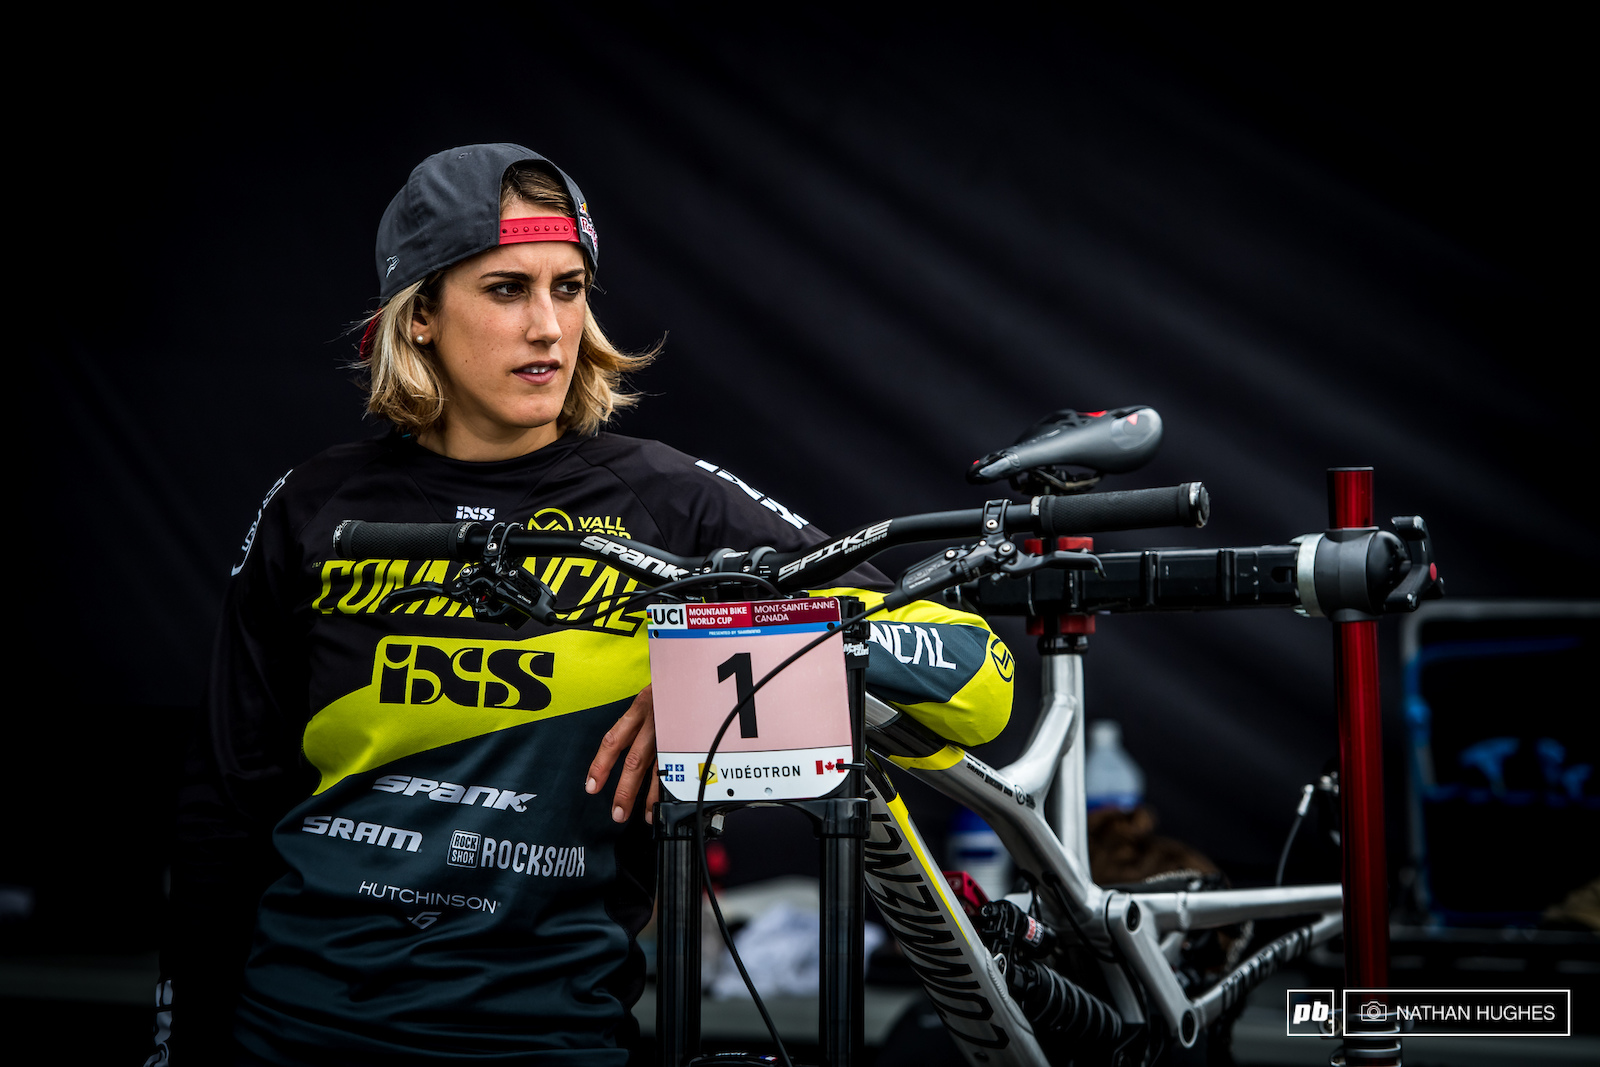 It s that time of year when things get awful serious and all eyes are fixed on the overall. Series leader Myriam Nicole with one of the biggest days of her career ahead of her.